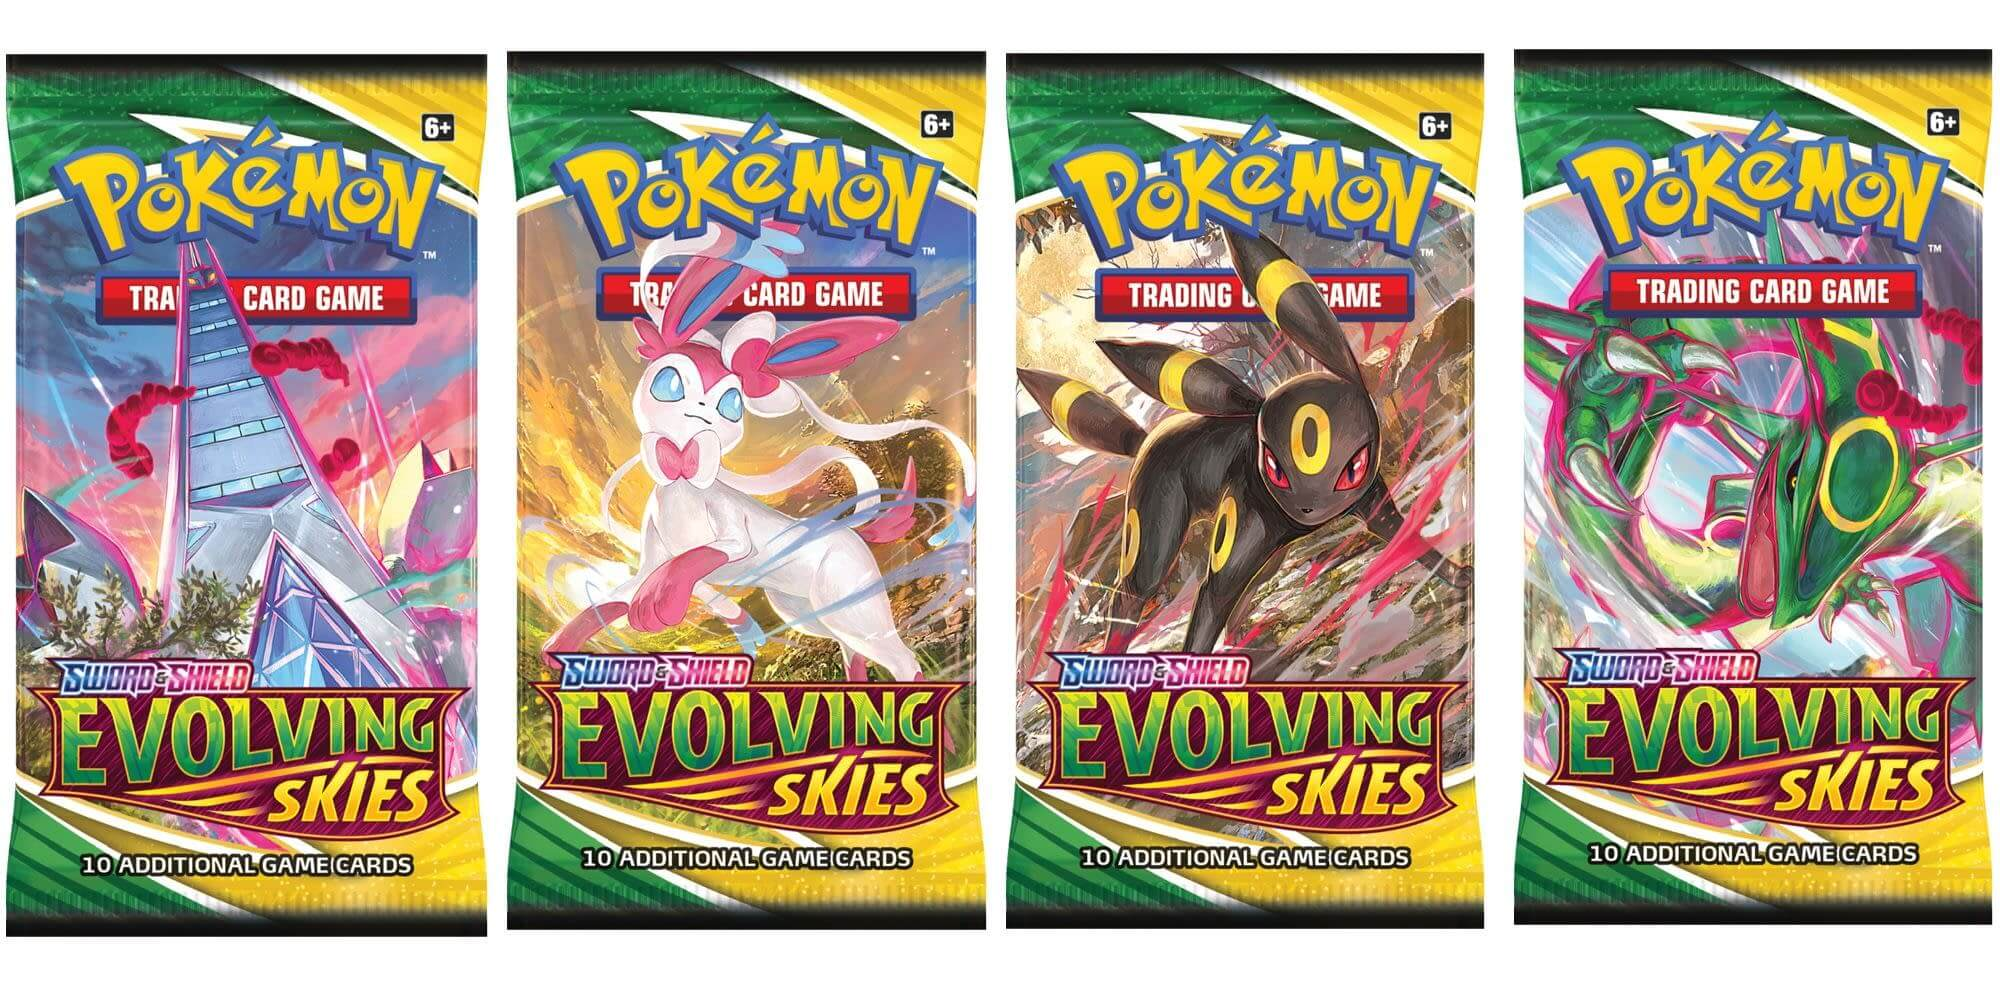 Pokemon Evolving Skies Card List - (August) Get The New Details!